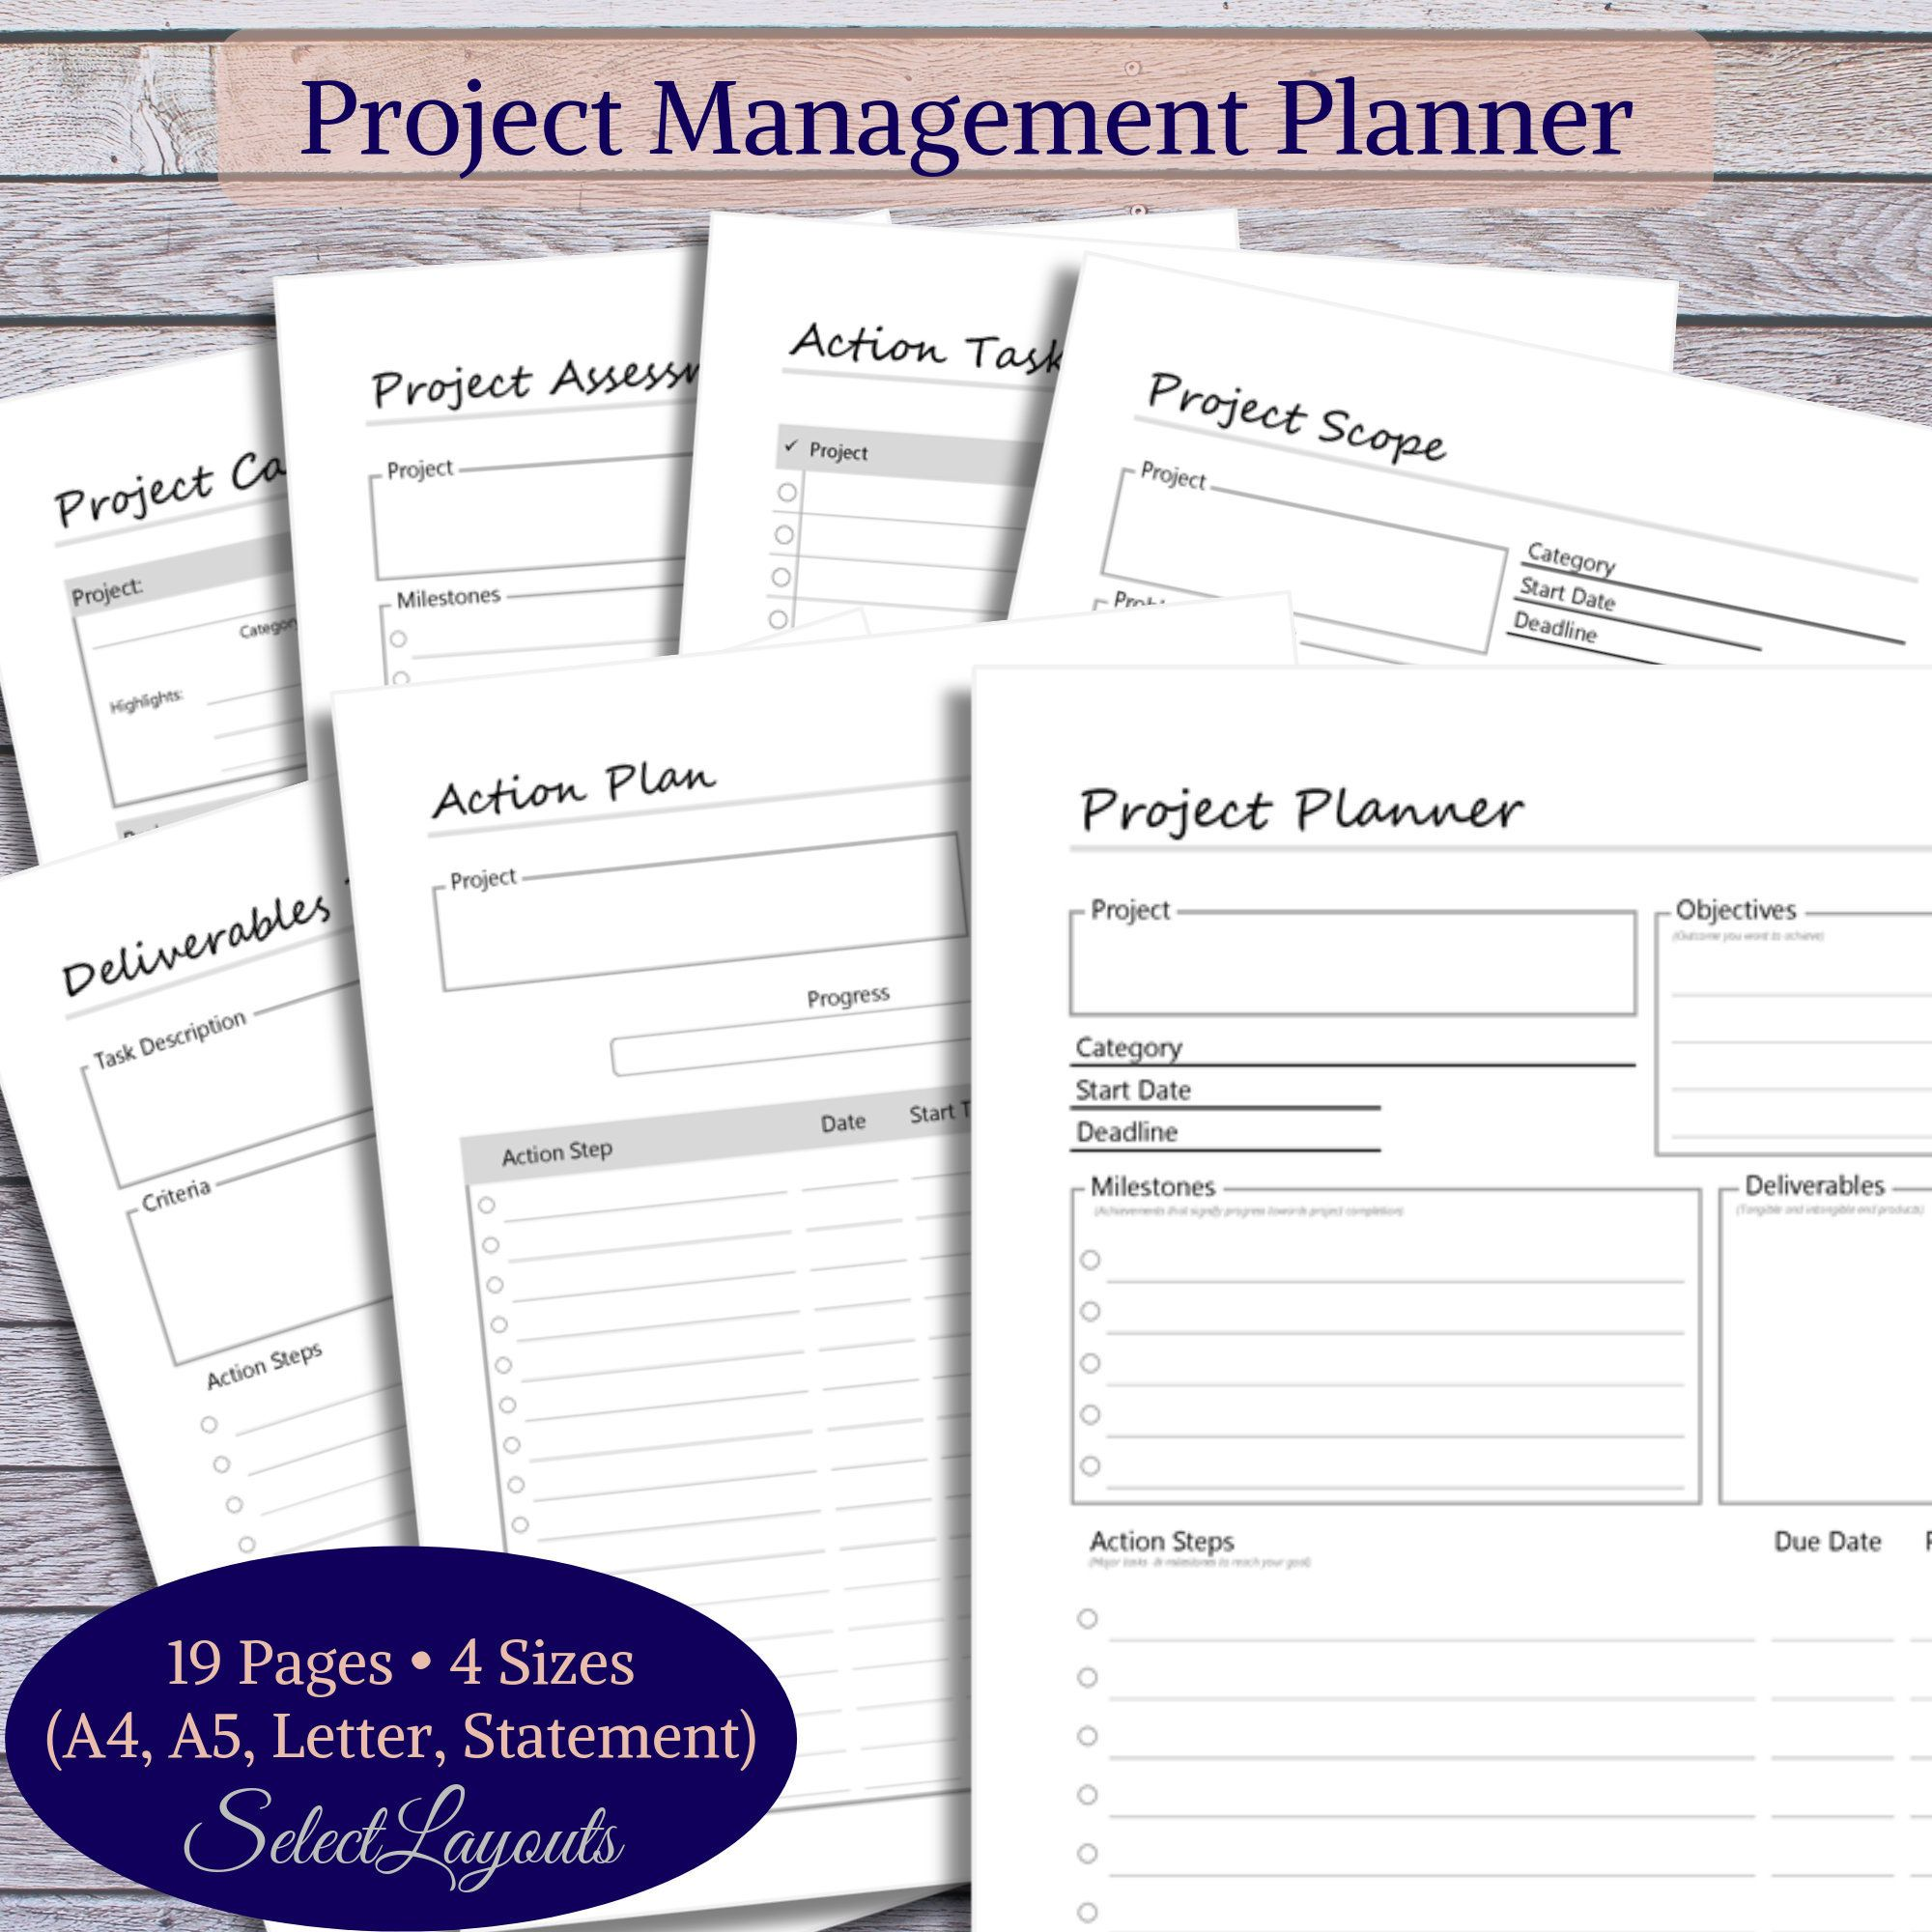 Project management for dummies pdf free download